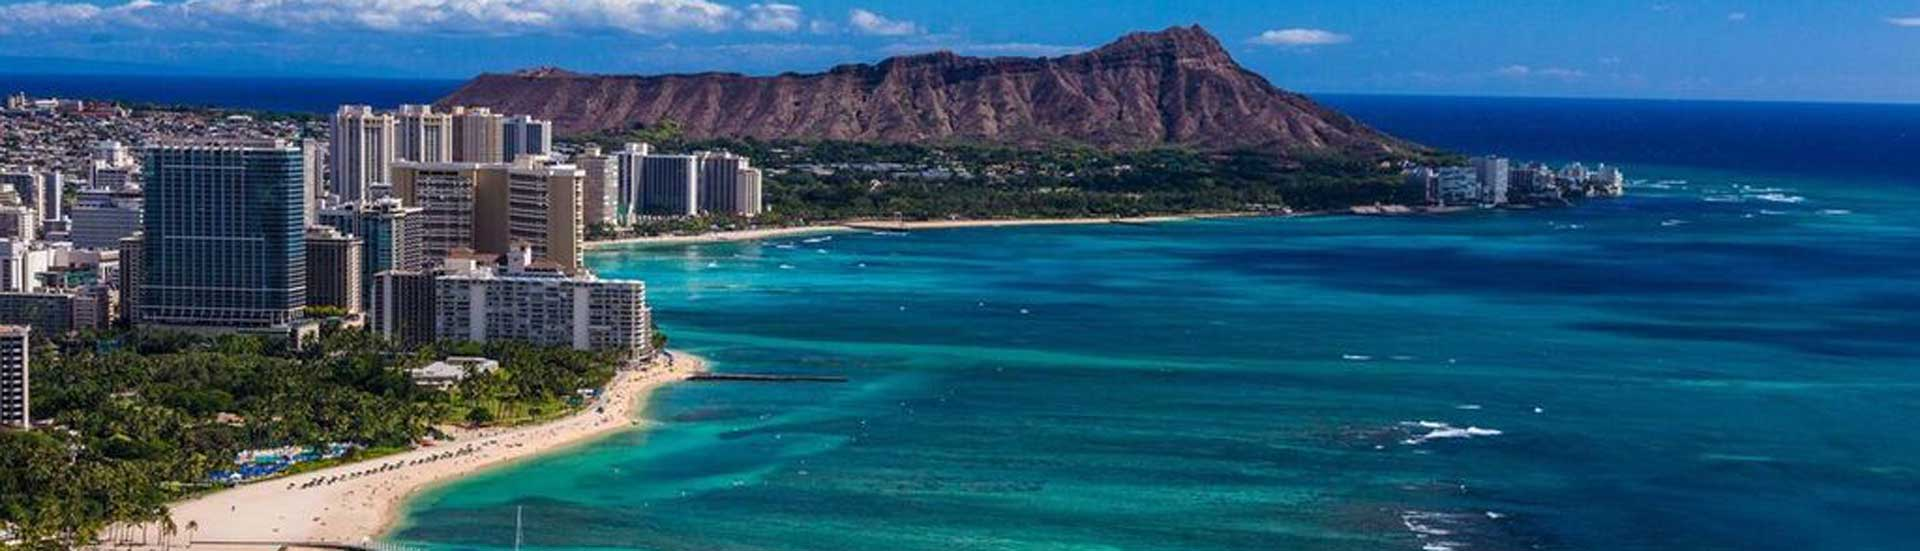 Diamond Head Hawaii – Honolulus Wahrzeichen